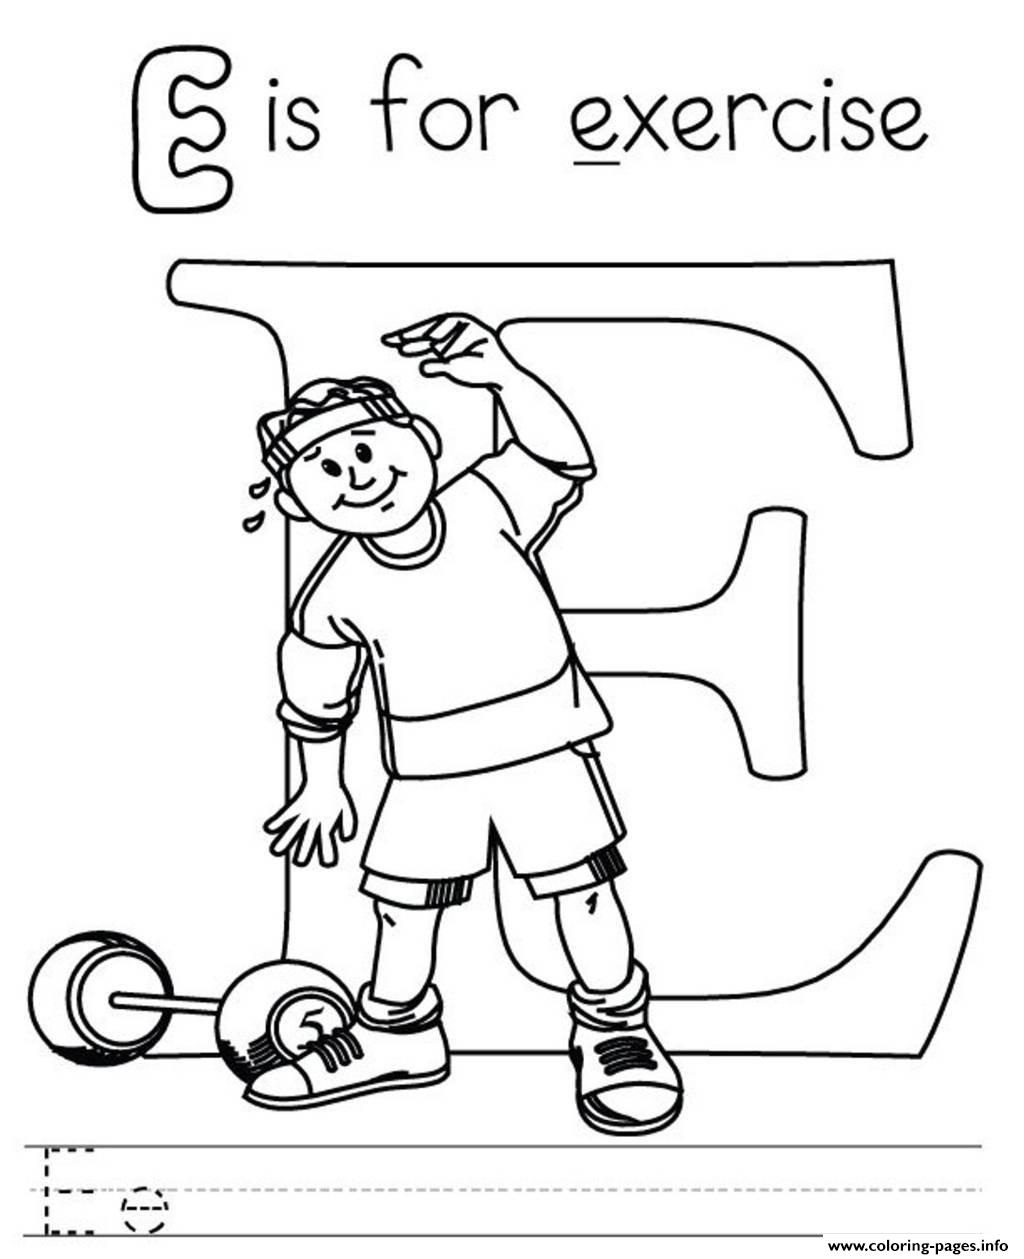 Exercise Alphabet S Free Coloring Pages Printable